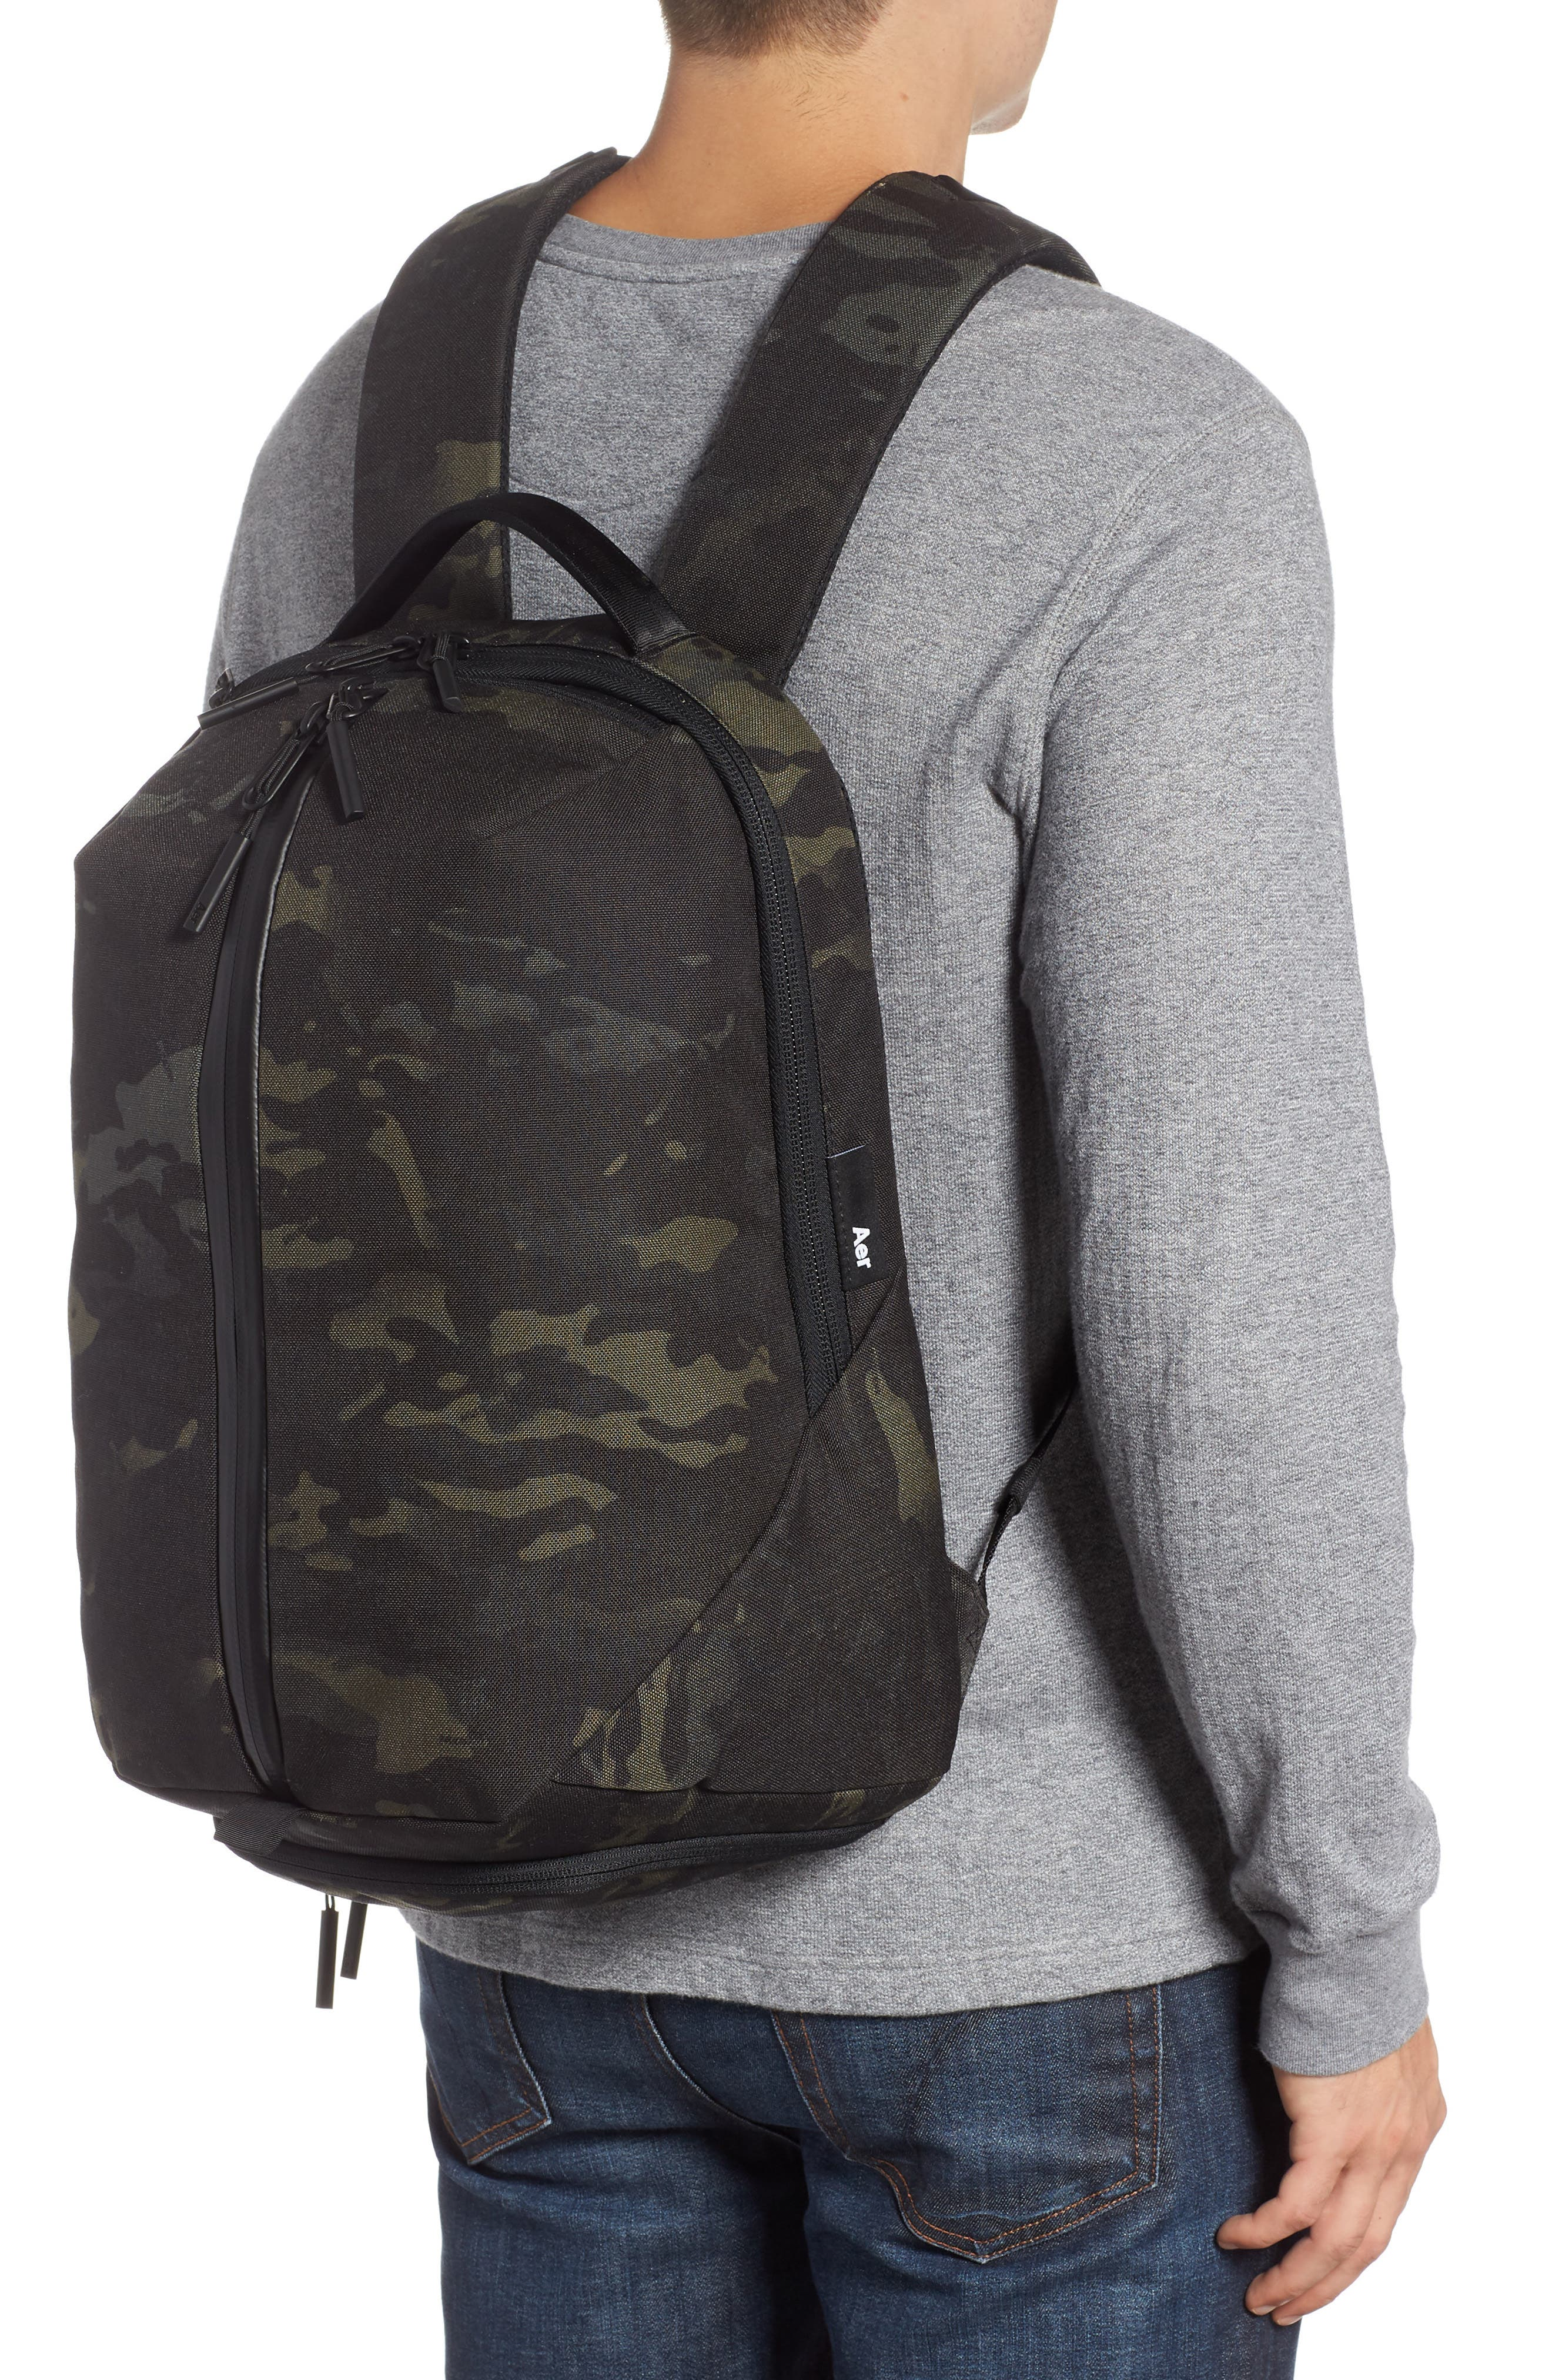 Fit Pack 2 Backpack,                             Alternate thumbnail 2, color,                             BLACK CAMO